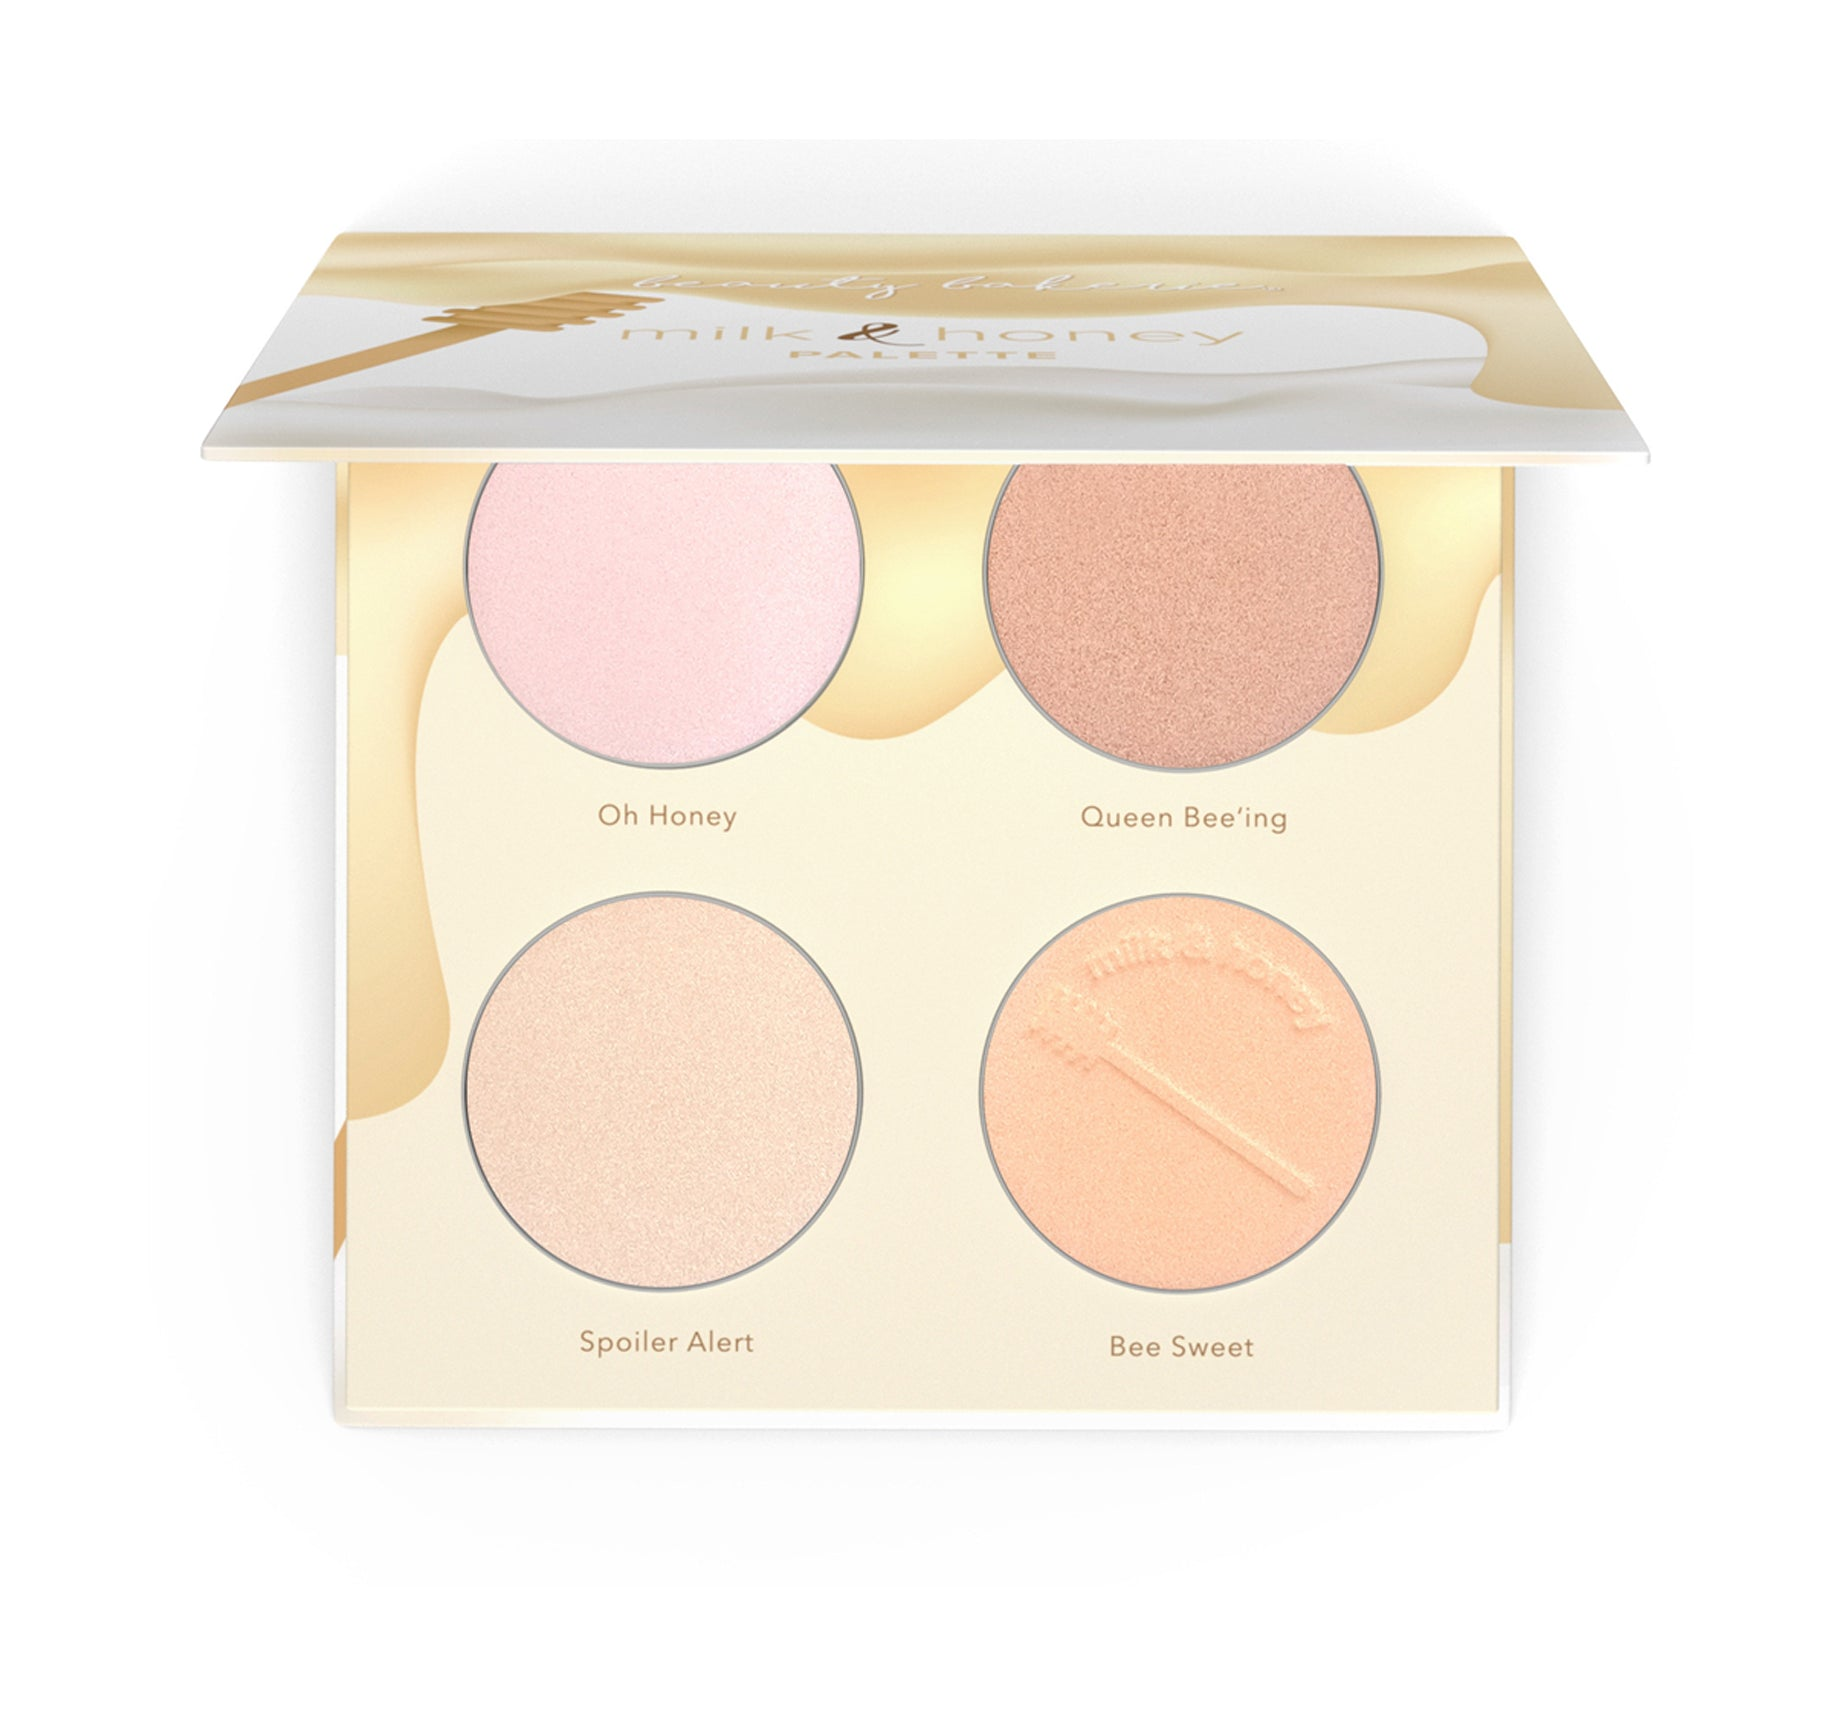 MILK & HONEY HIGHLIGHTING PALETTE, view larger image